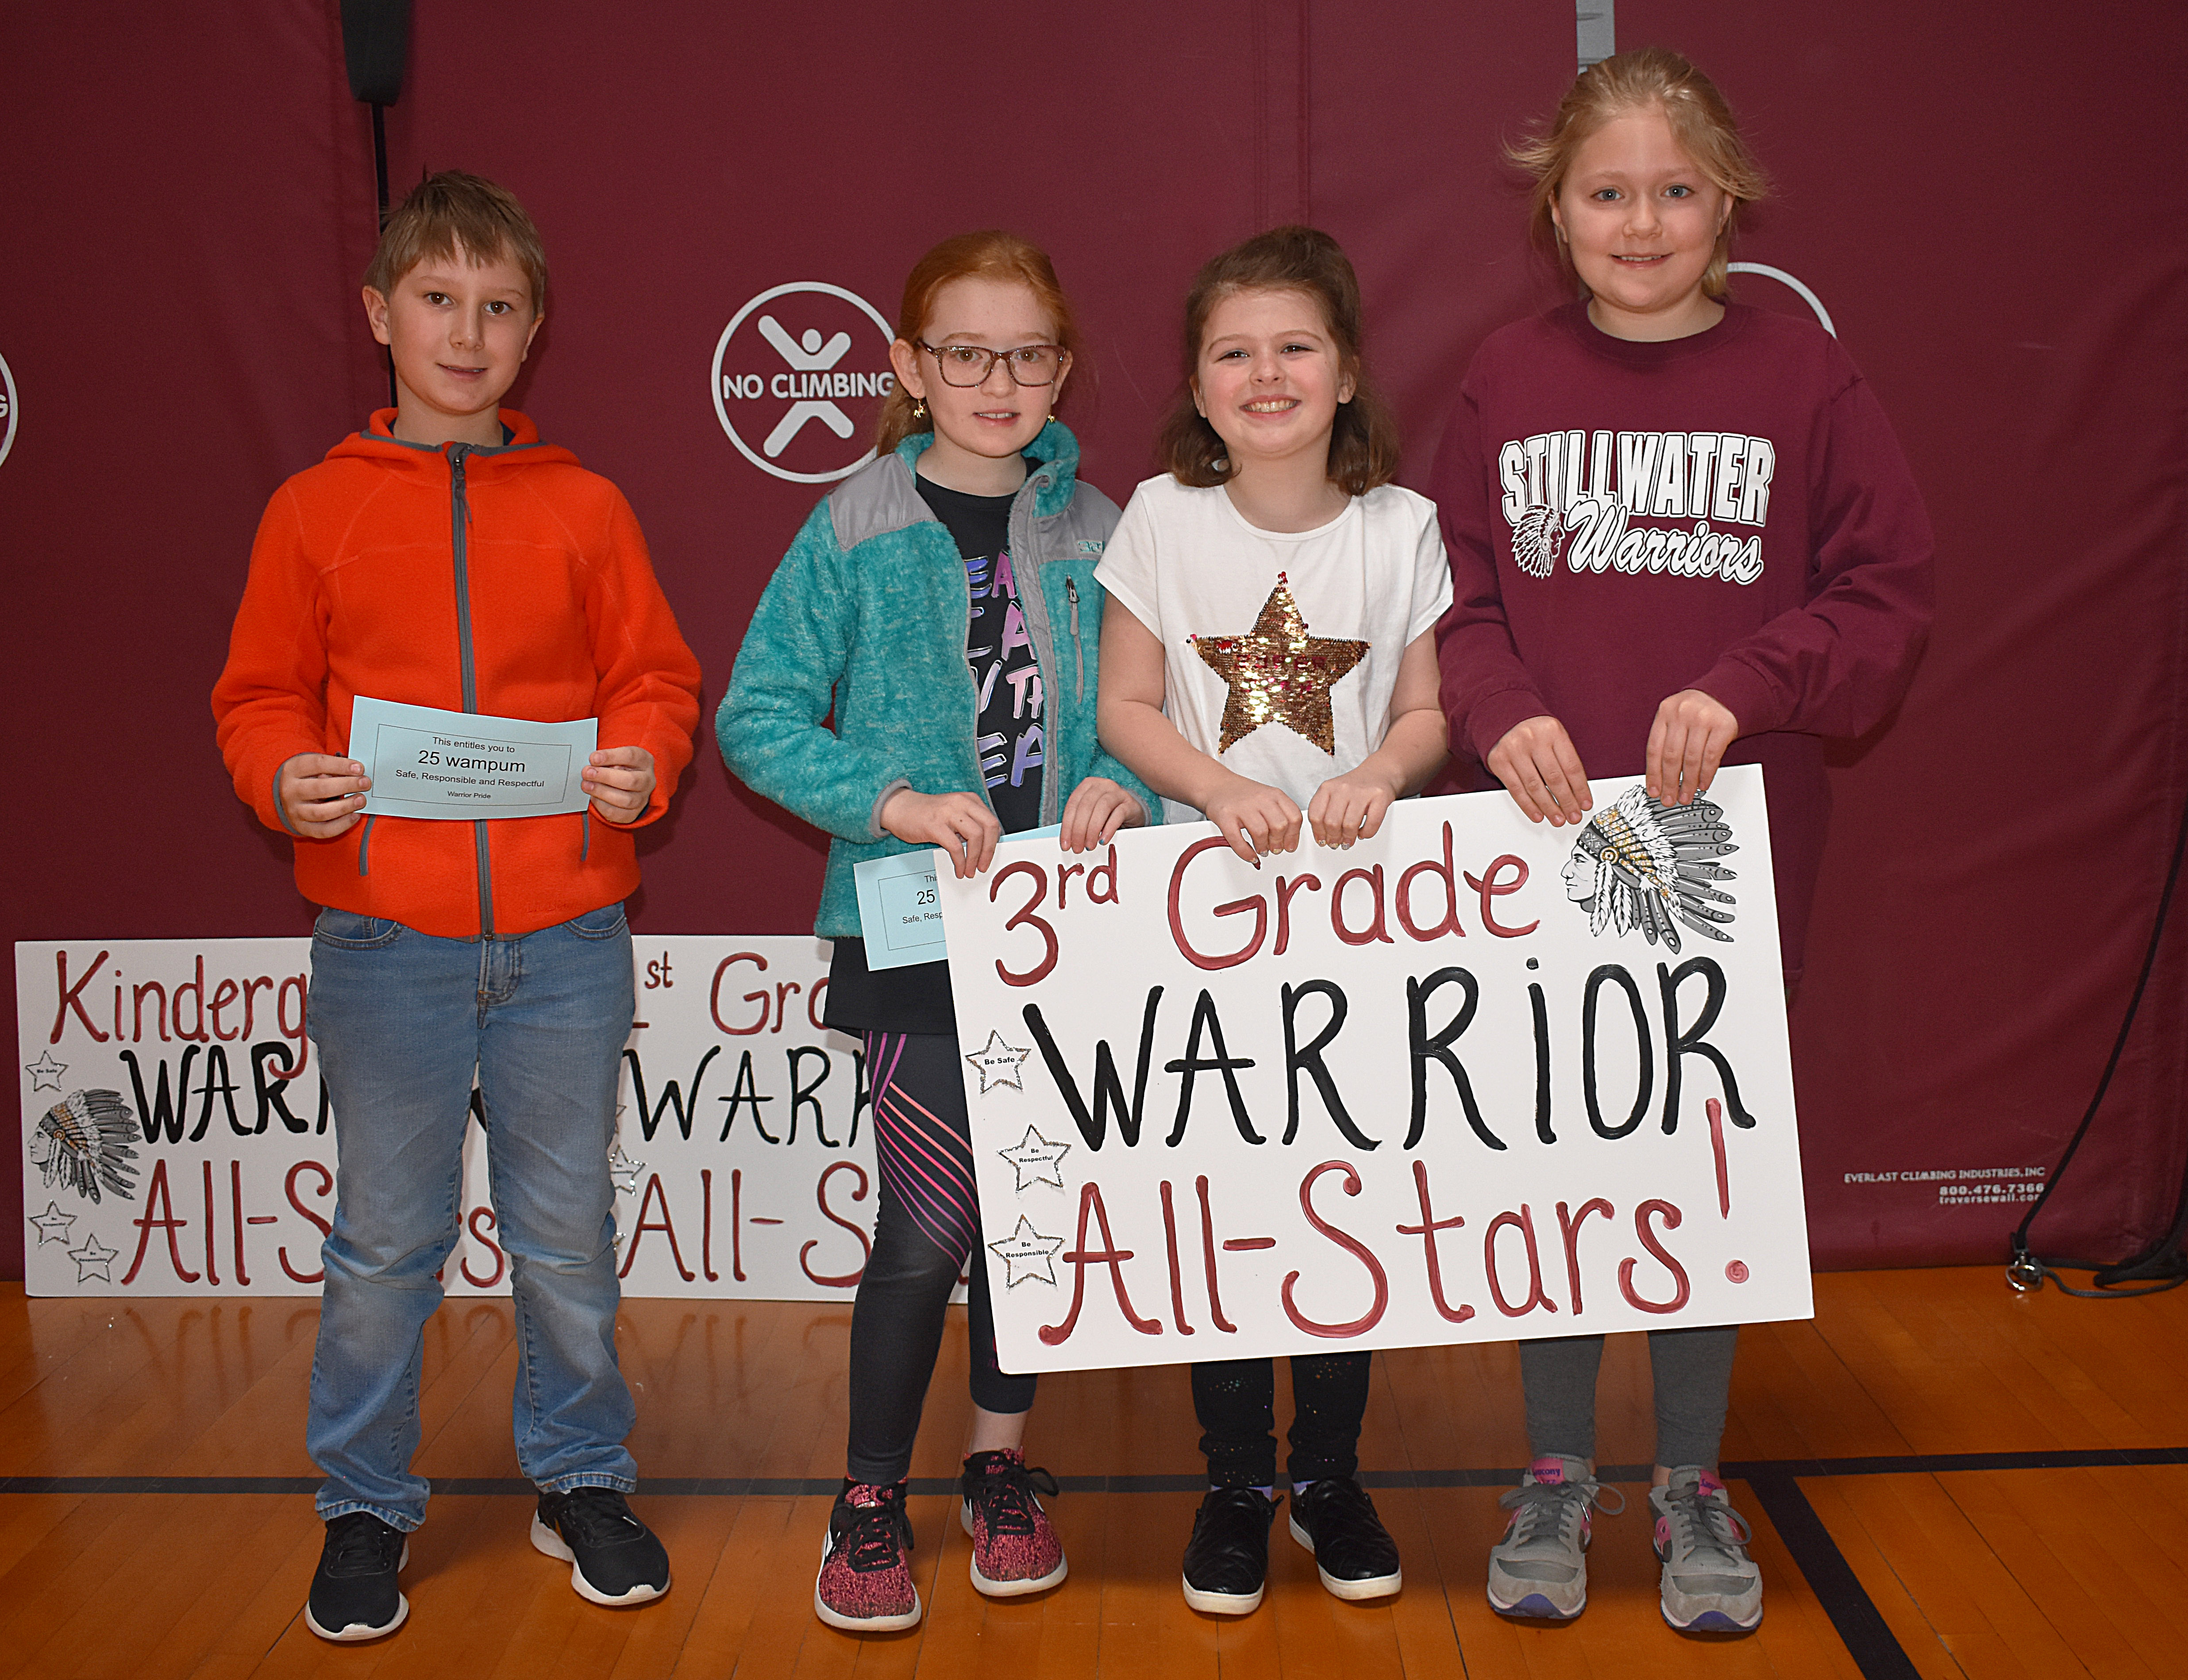 Kids standing together with third grade sign